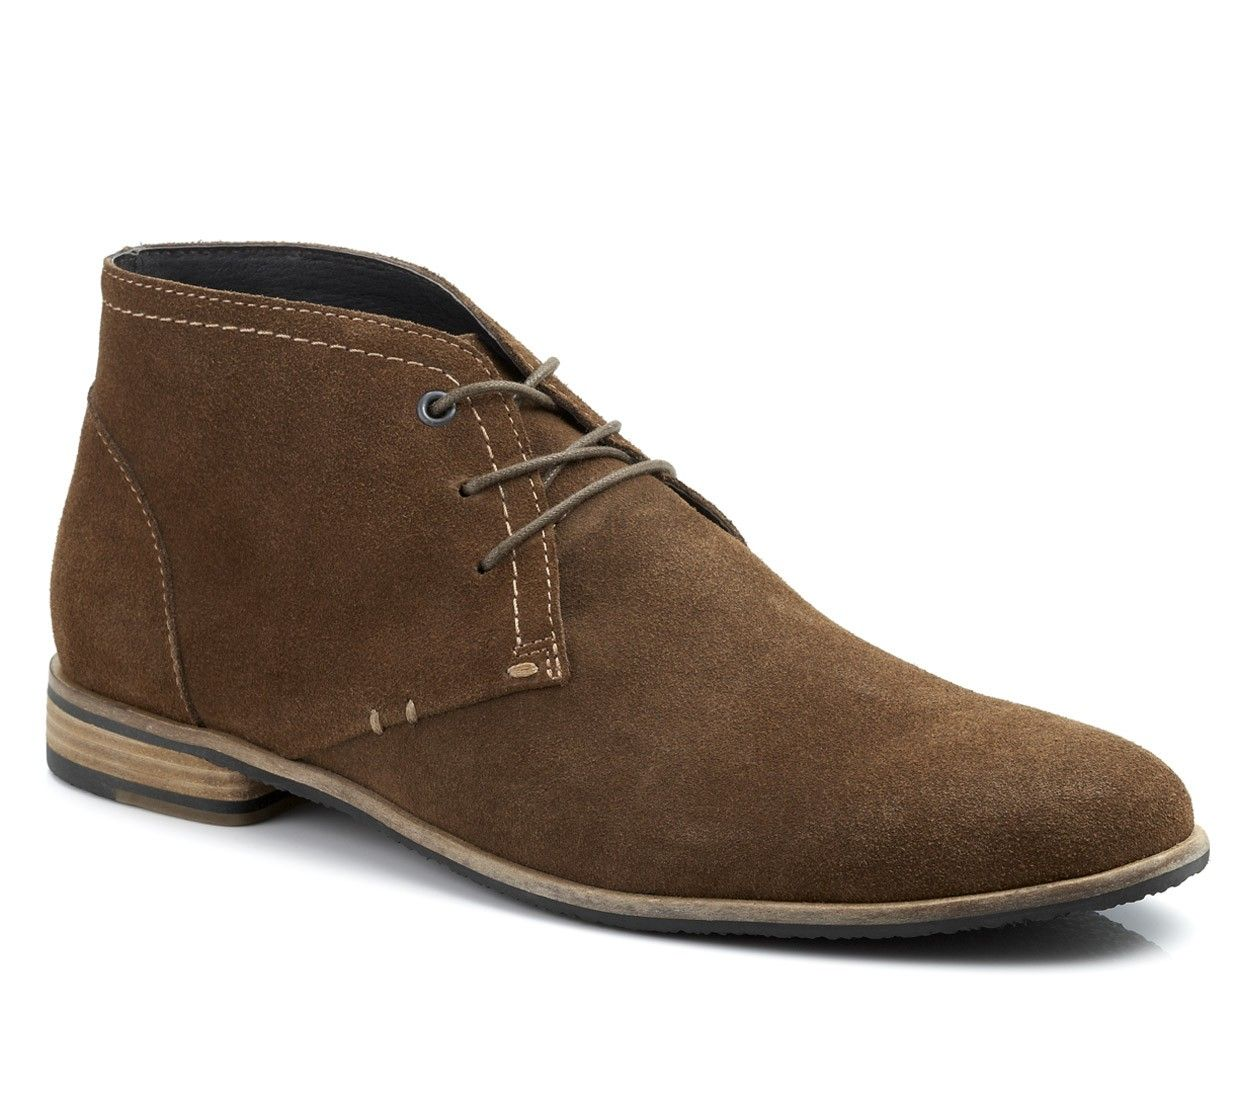 3f5bbe9e193 Aquila Shoes - Doyle Brown | For Him | Boots, Shoes, Desert boots